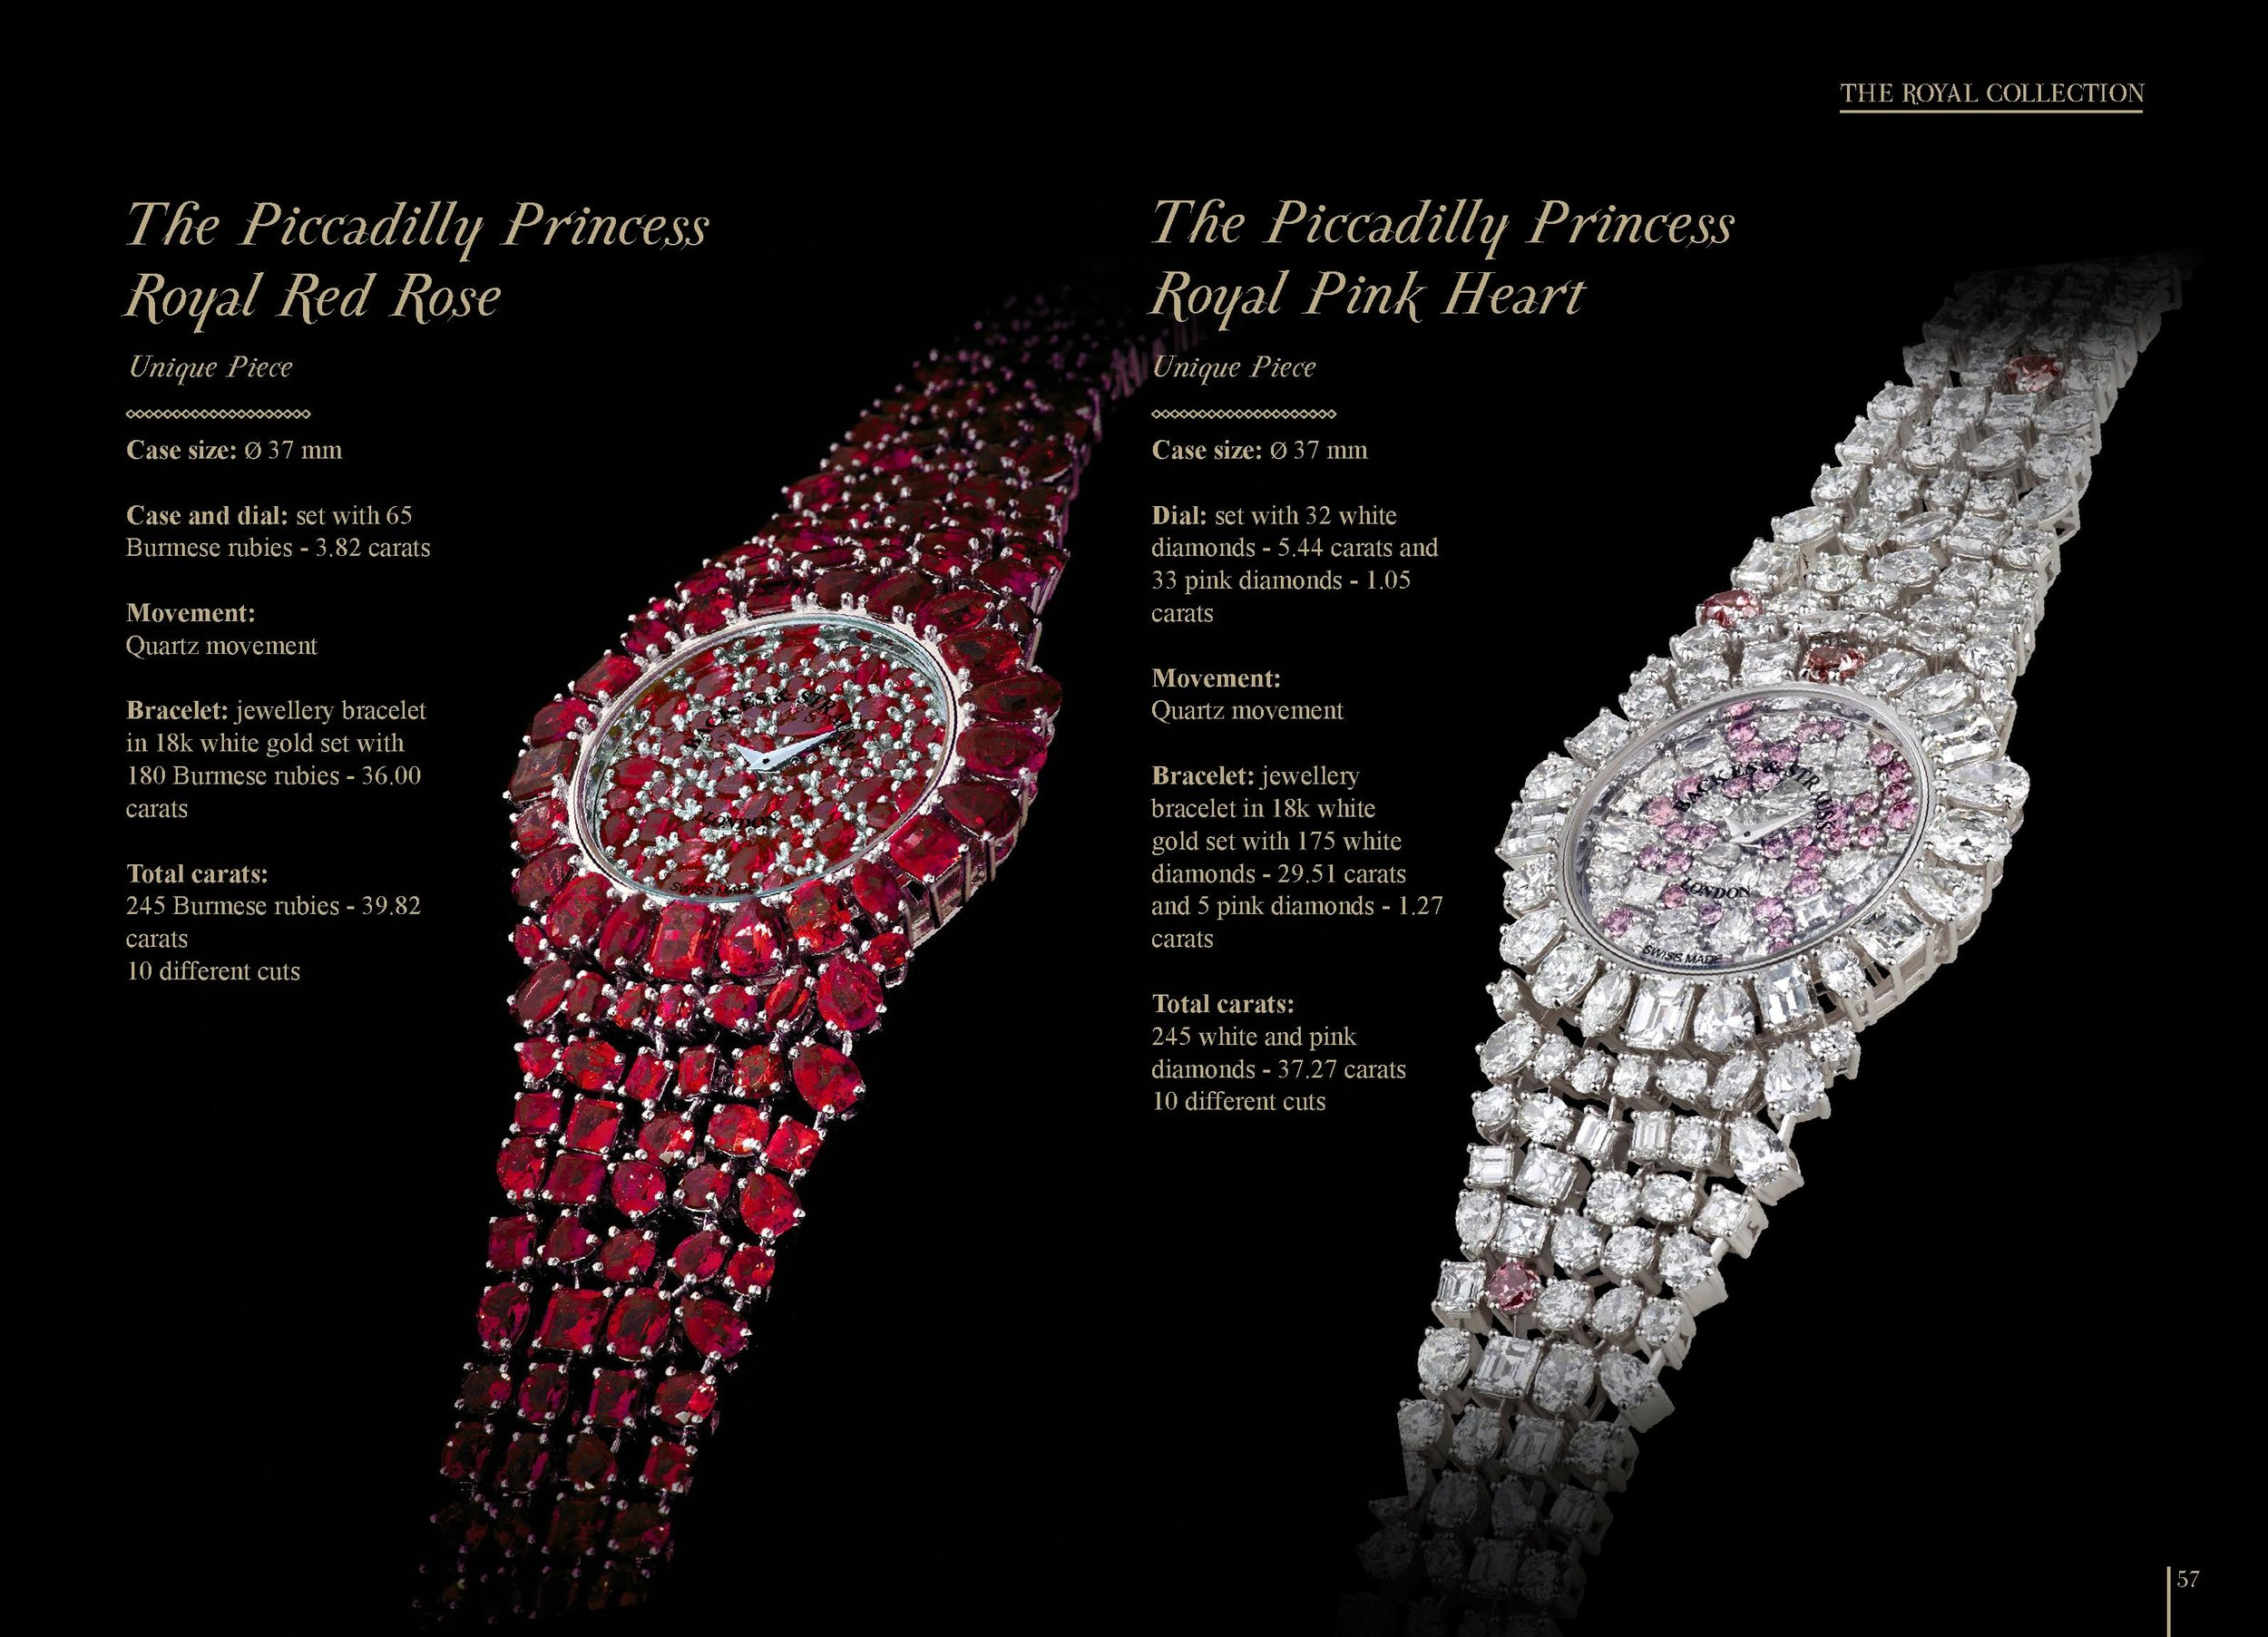 The Piccadilly Princess Royal Red Rose and Pink Heart msaterpiece